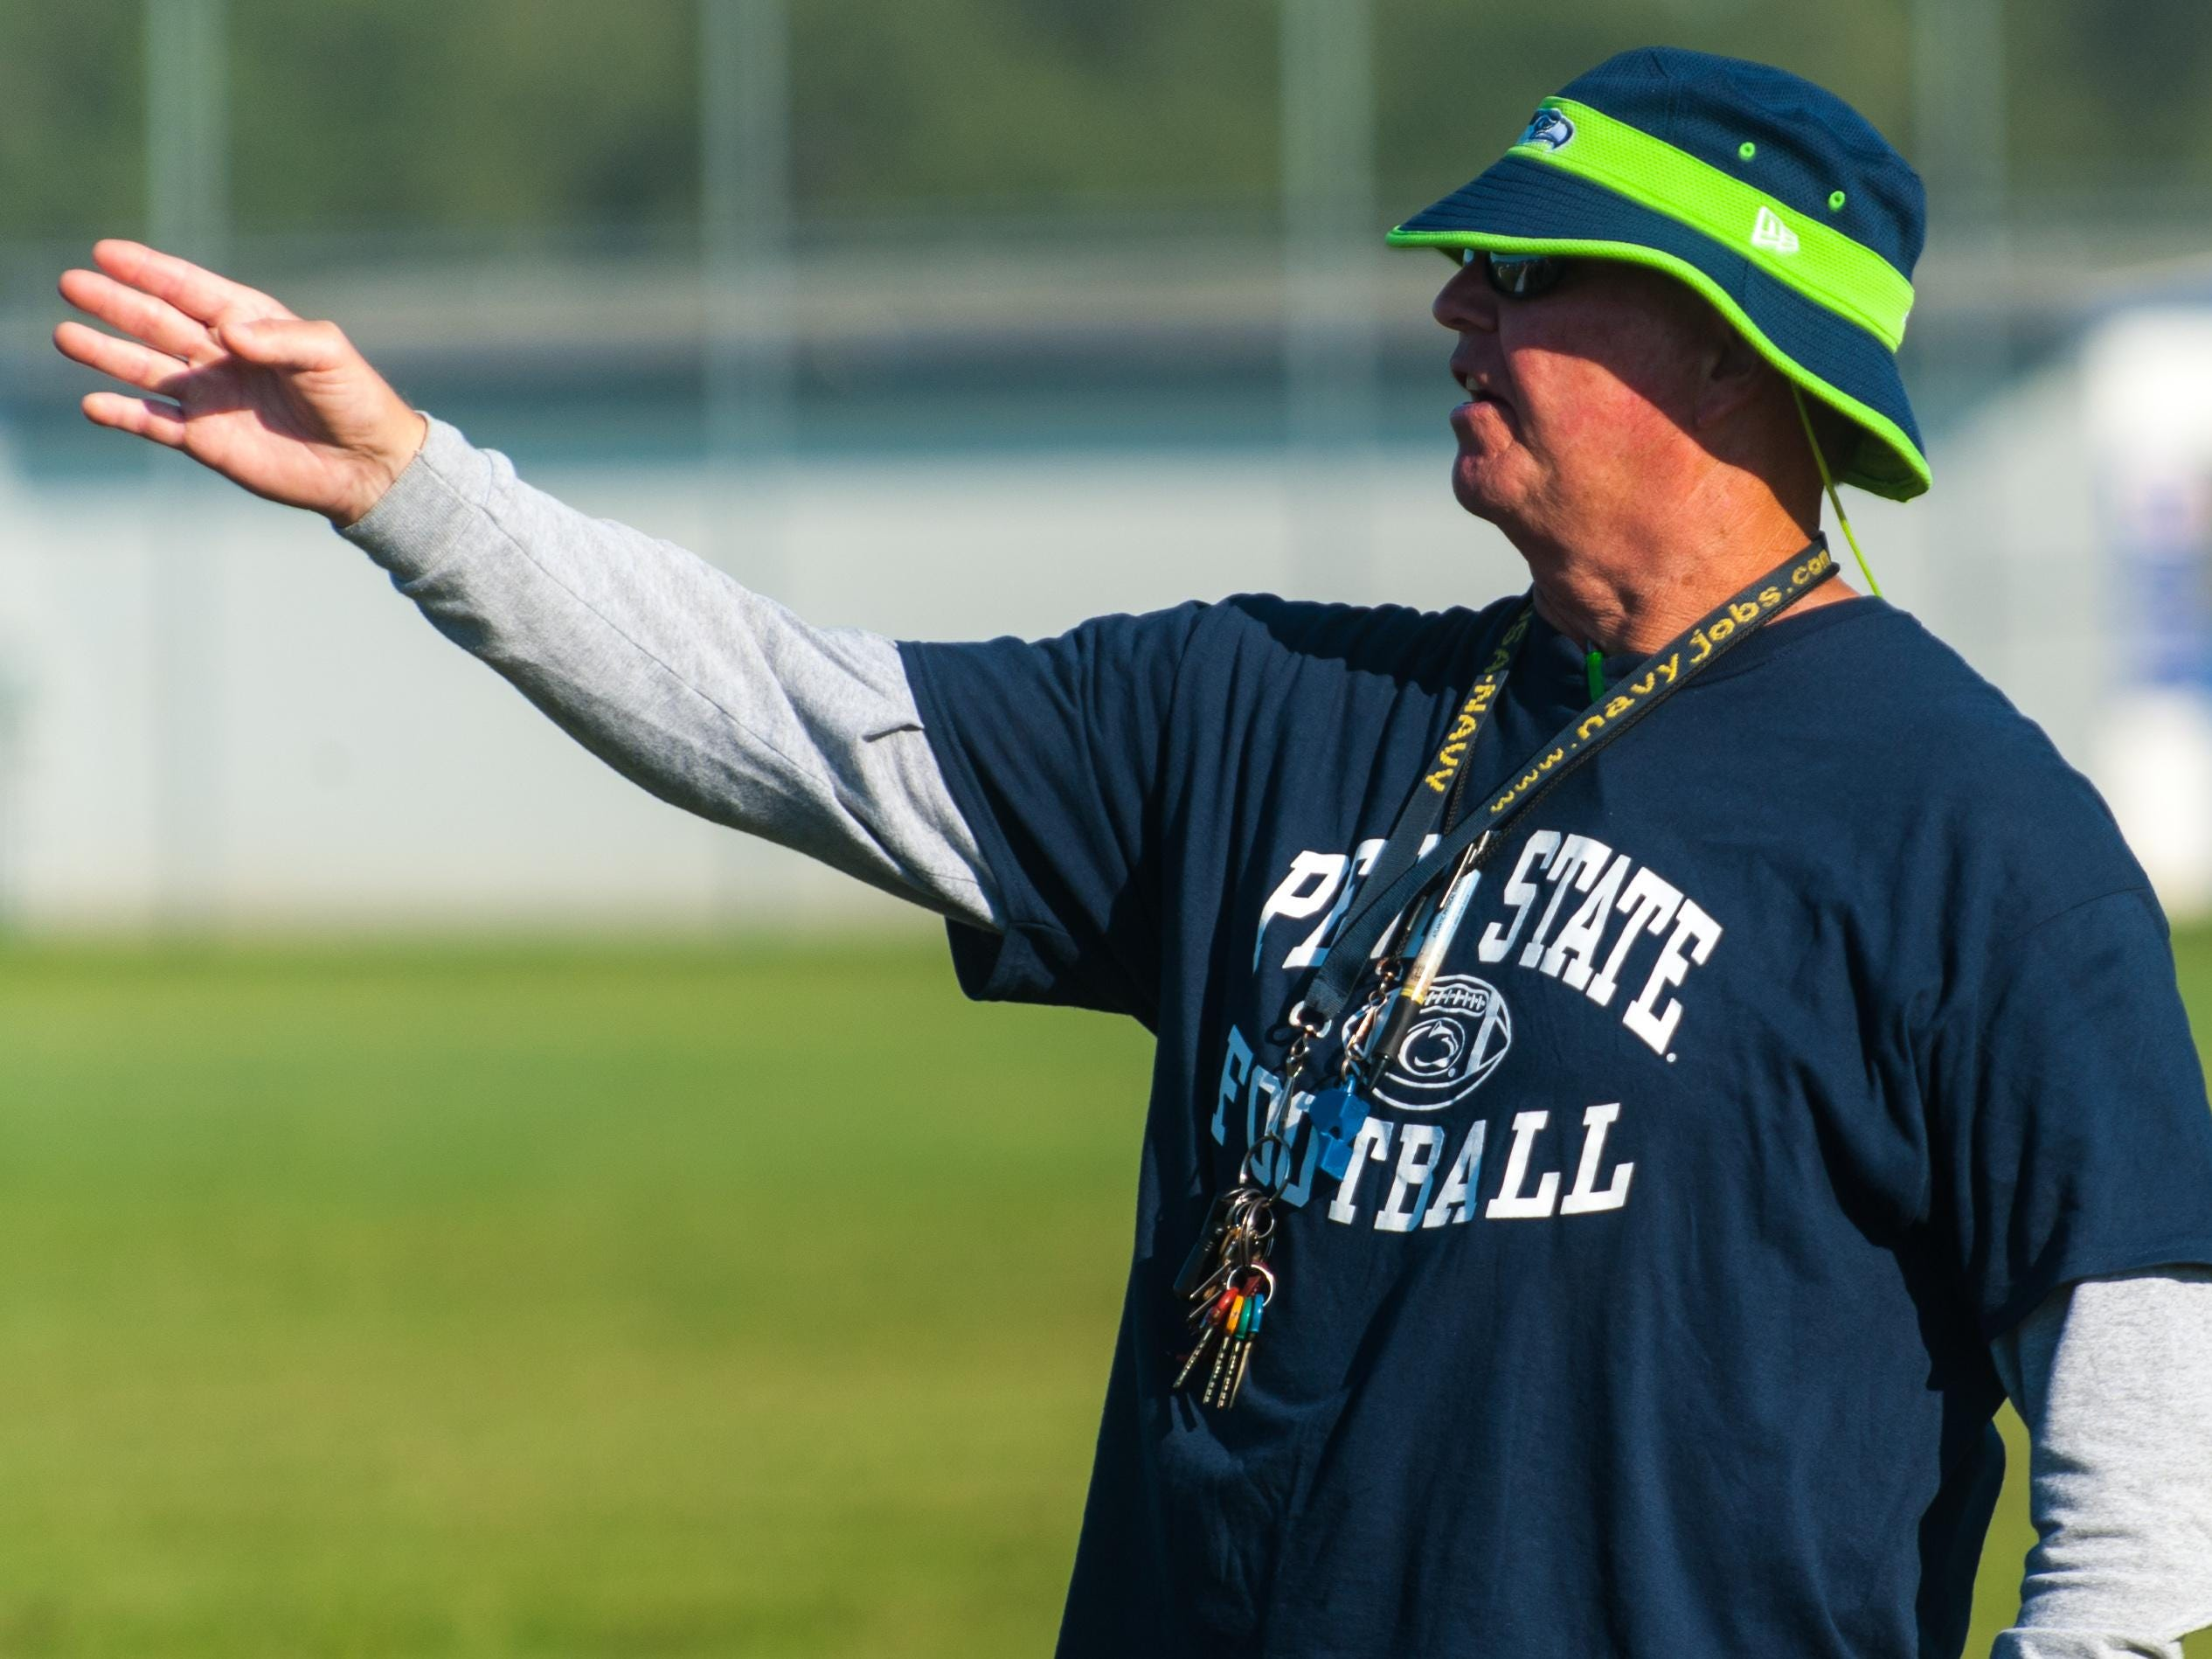 Stephen Decatur head coach Bob Knox talks to his team in pre-practice on Friday morning in Berlin.